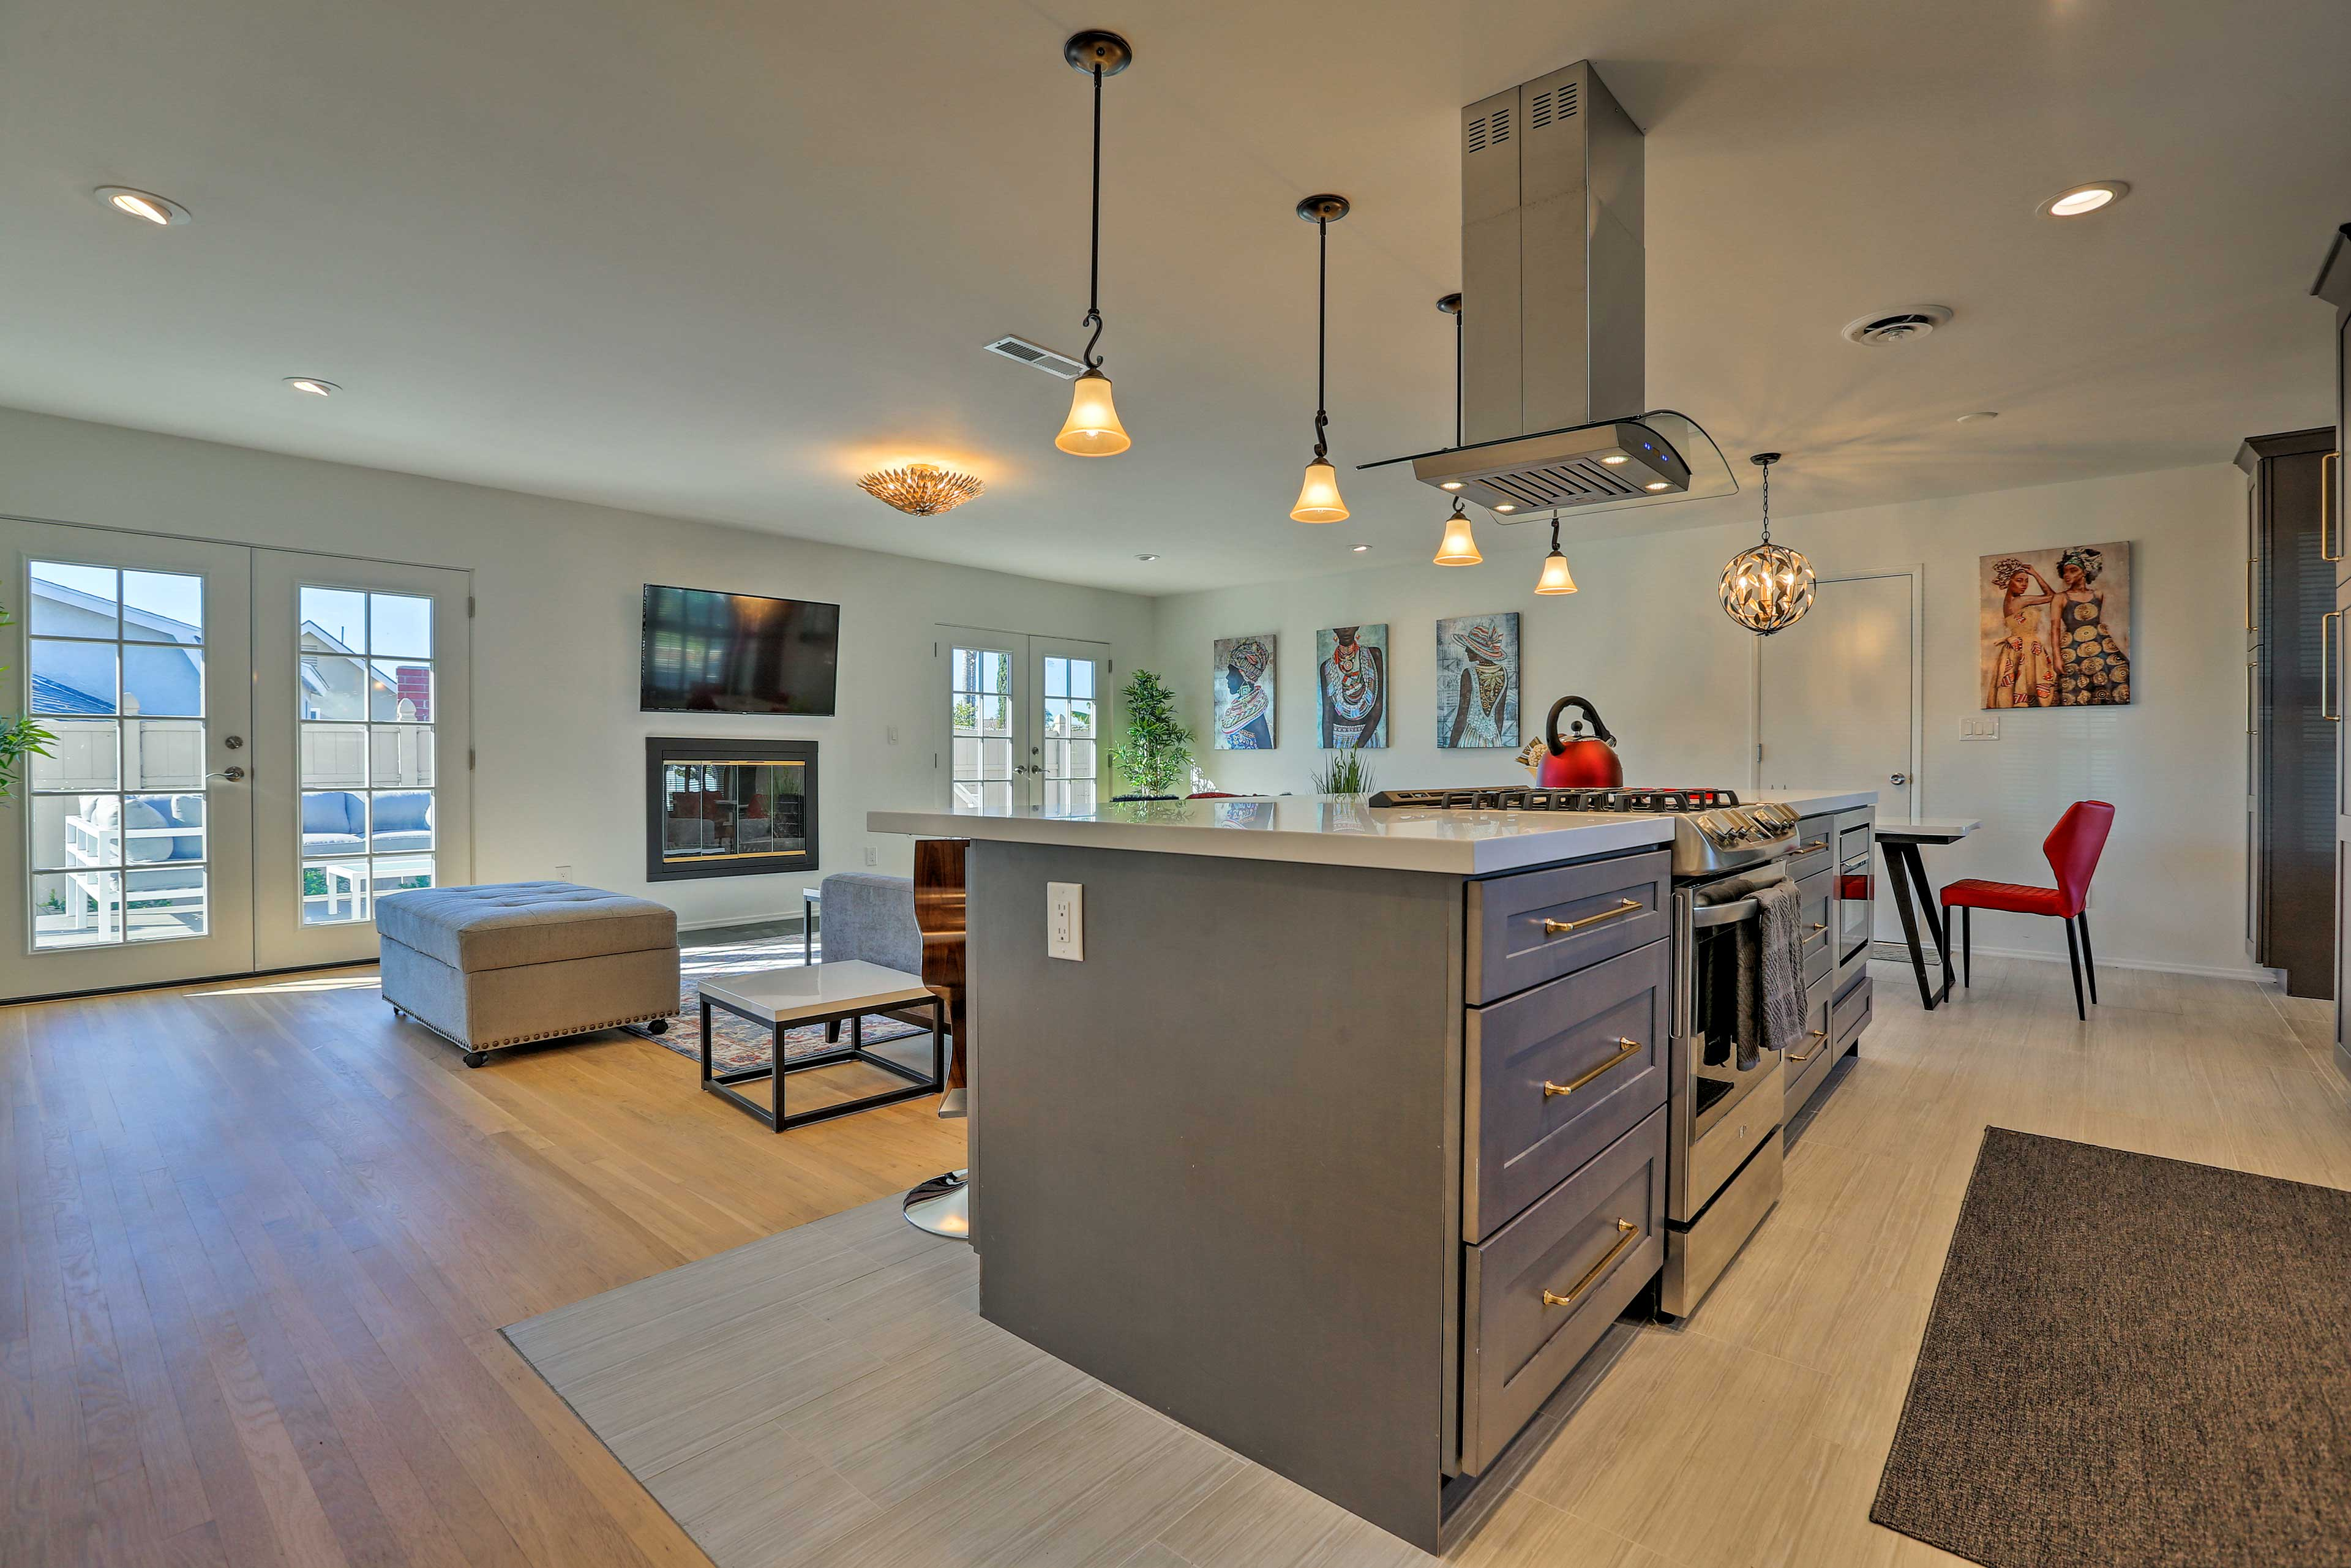 The fully equipped kitchen has everything you need to prepare home-cooked meals.